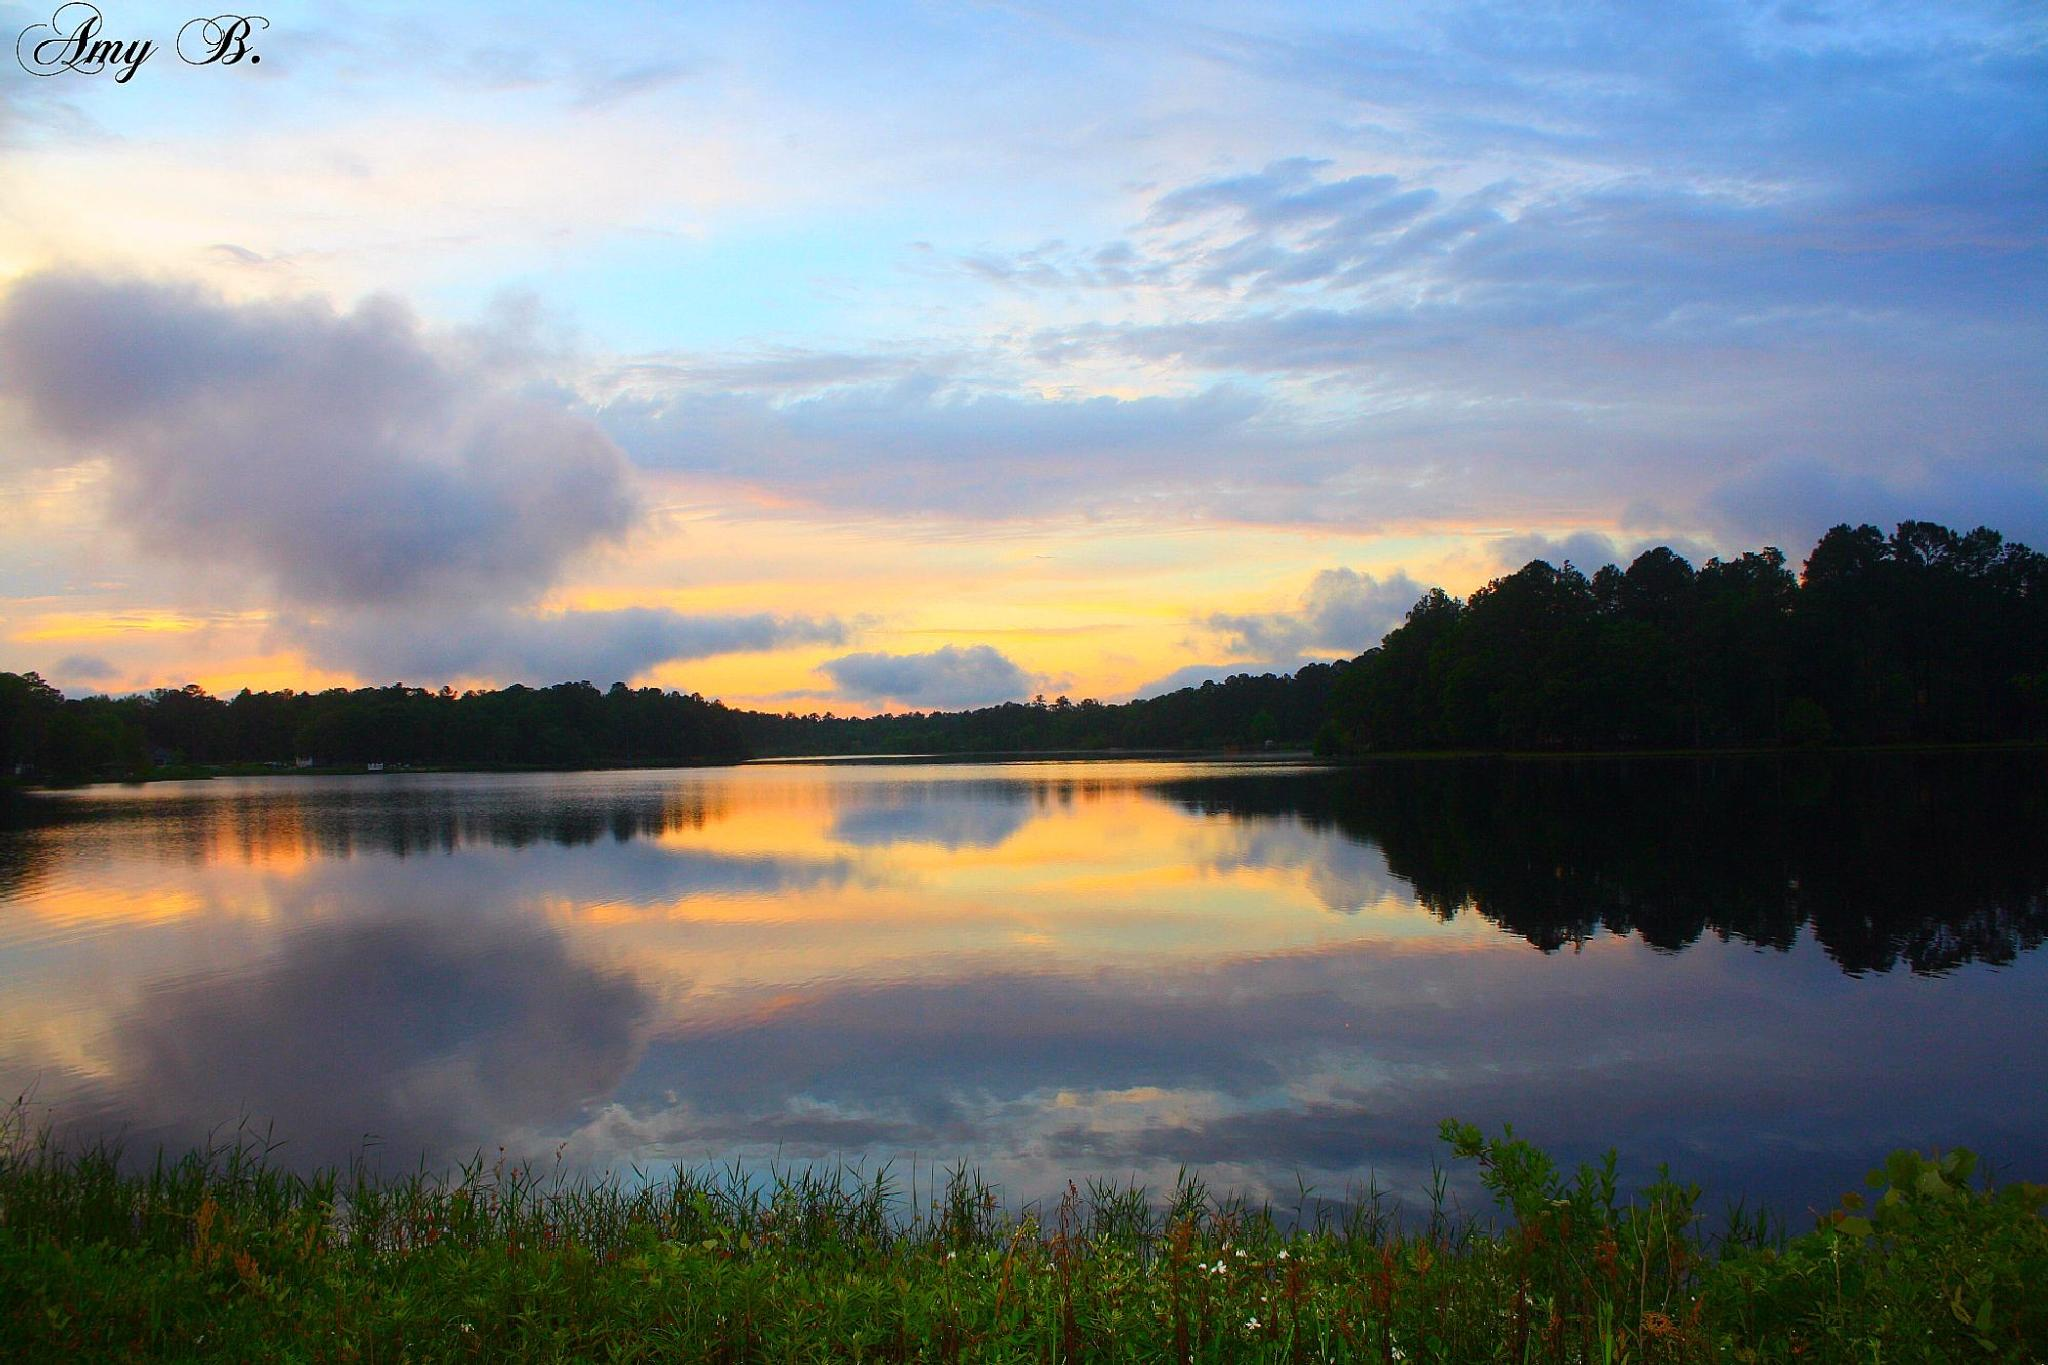 Blue and yellow sunset reflected in lake by amy.conger.9